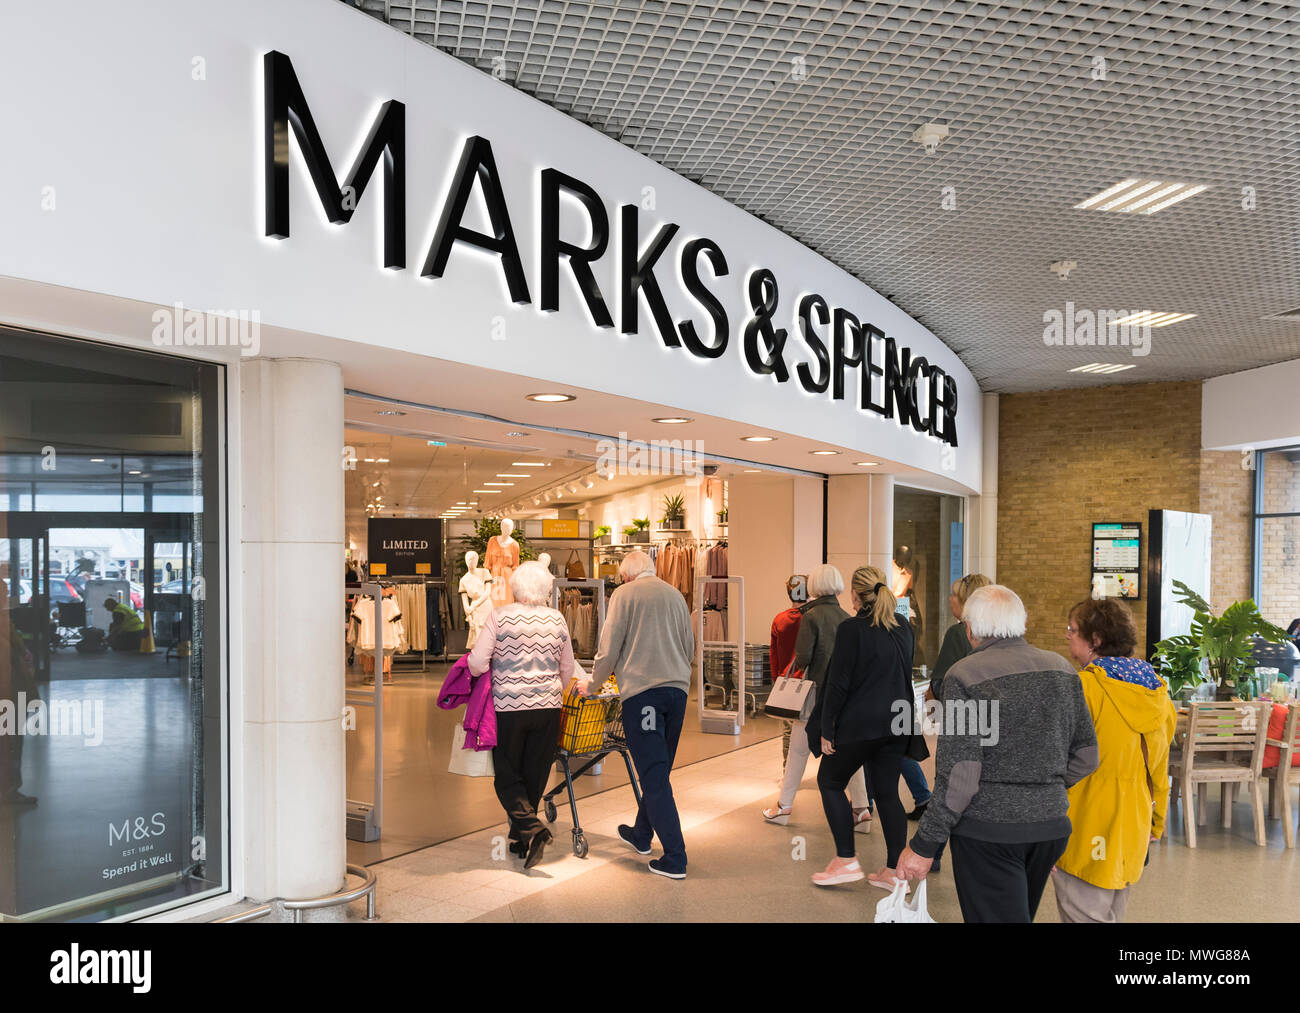 Marks and Spencer shop front. M&S store front in Holmbush Shopping Centre, Shoreham, West Sussex, England, UK. Shopping mall. - Stock Image